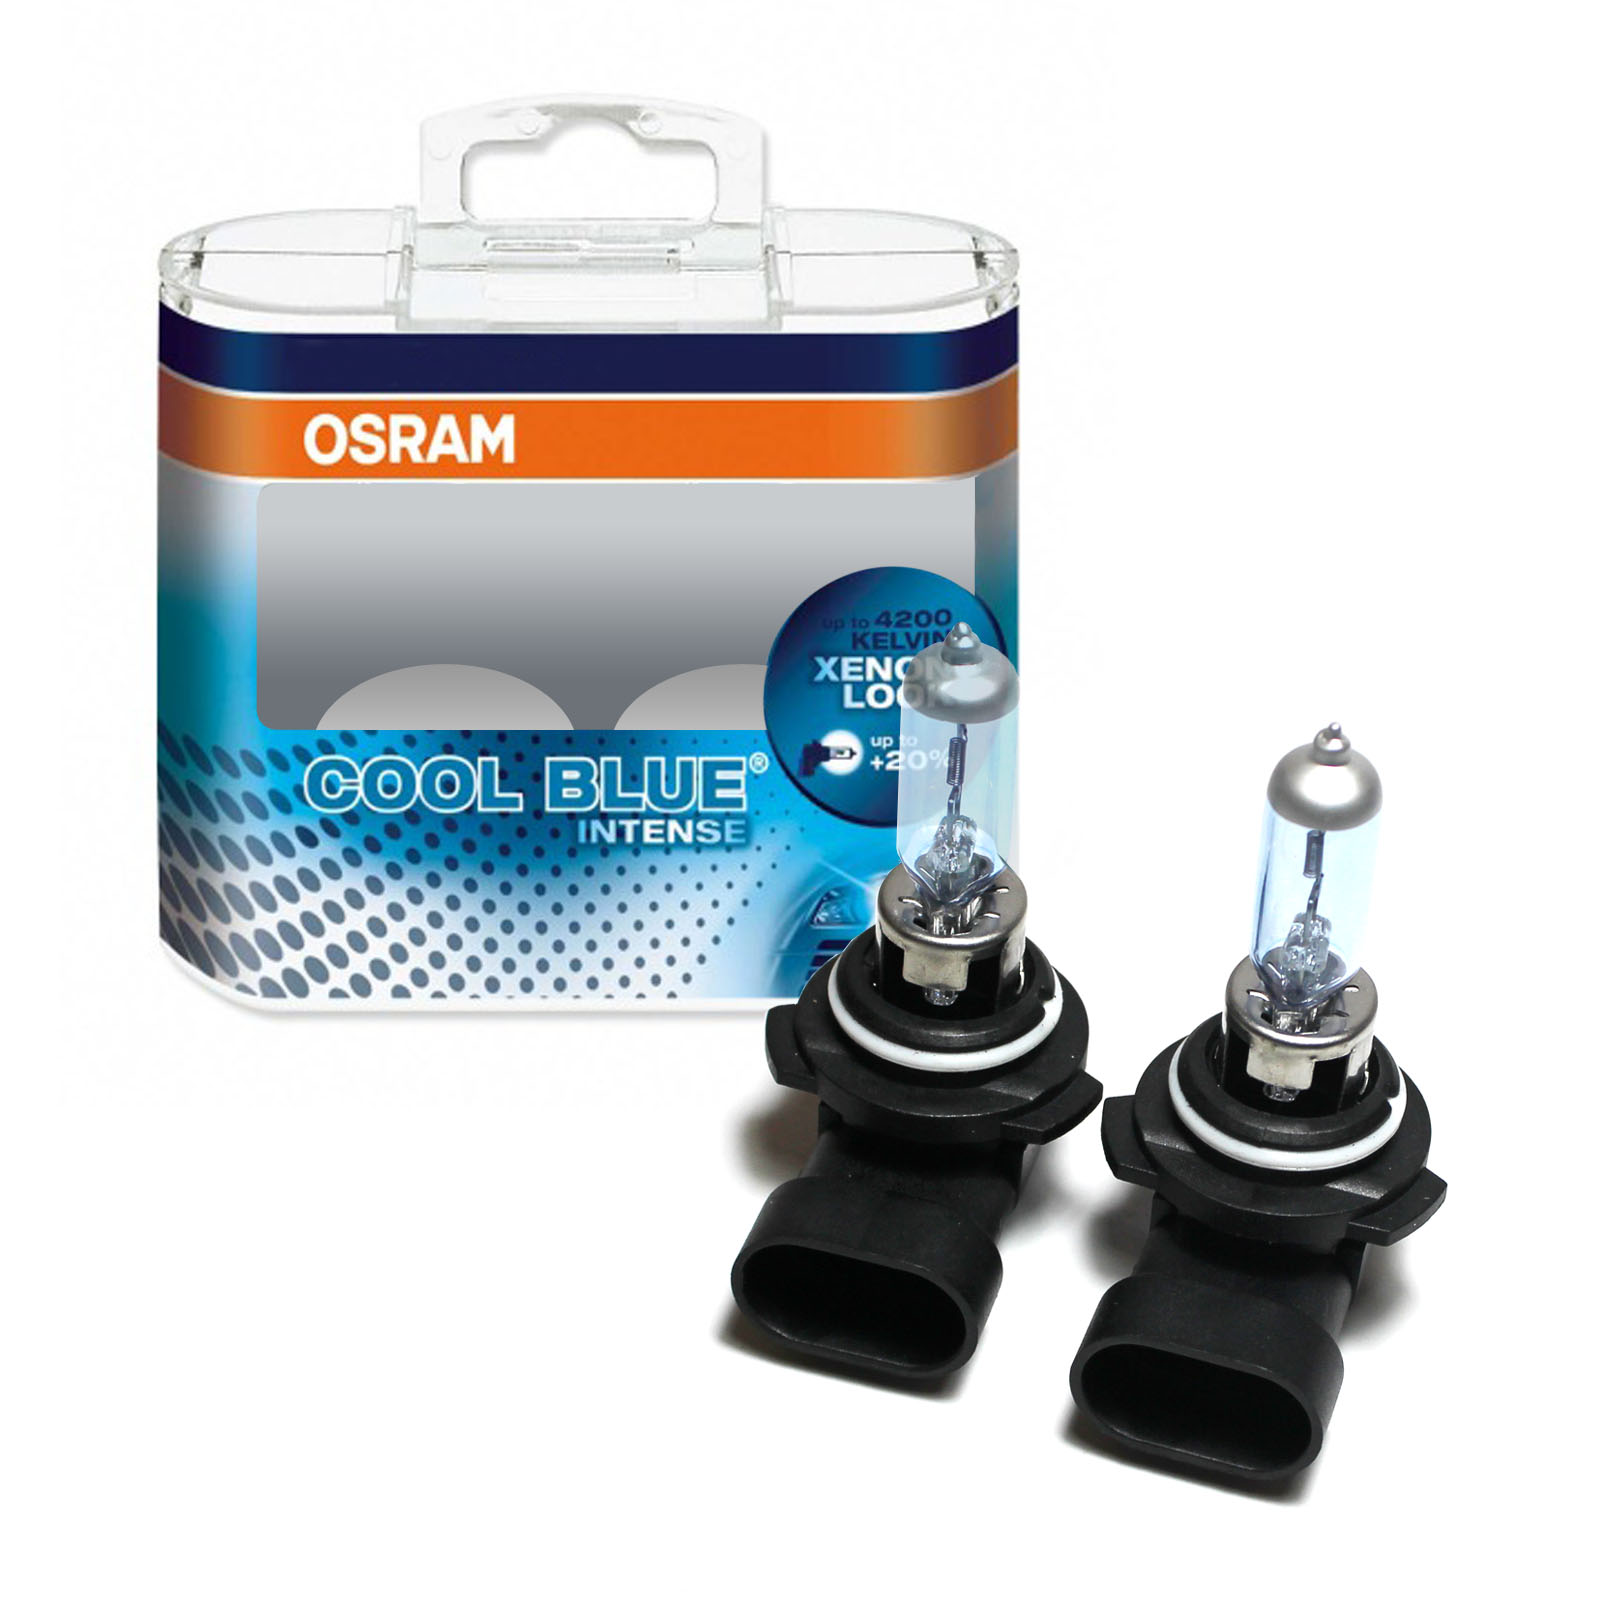 hb4 osram cool blue intense low beam bulbs lights headlight headlamp genuine ebay. Black Bedroom Furniture Sets. Home Design Ideas